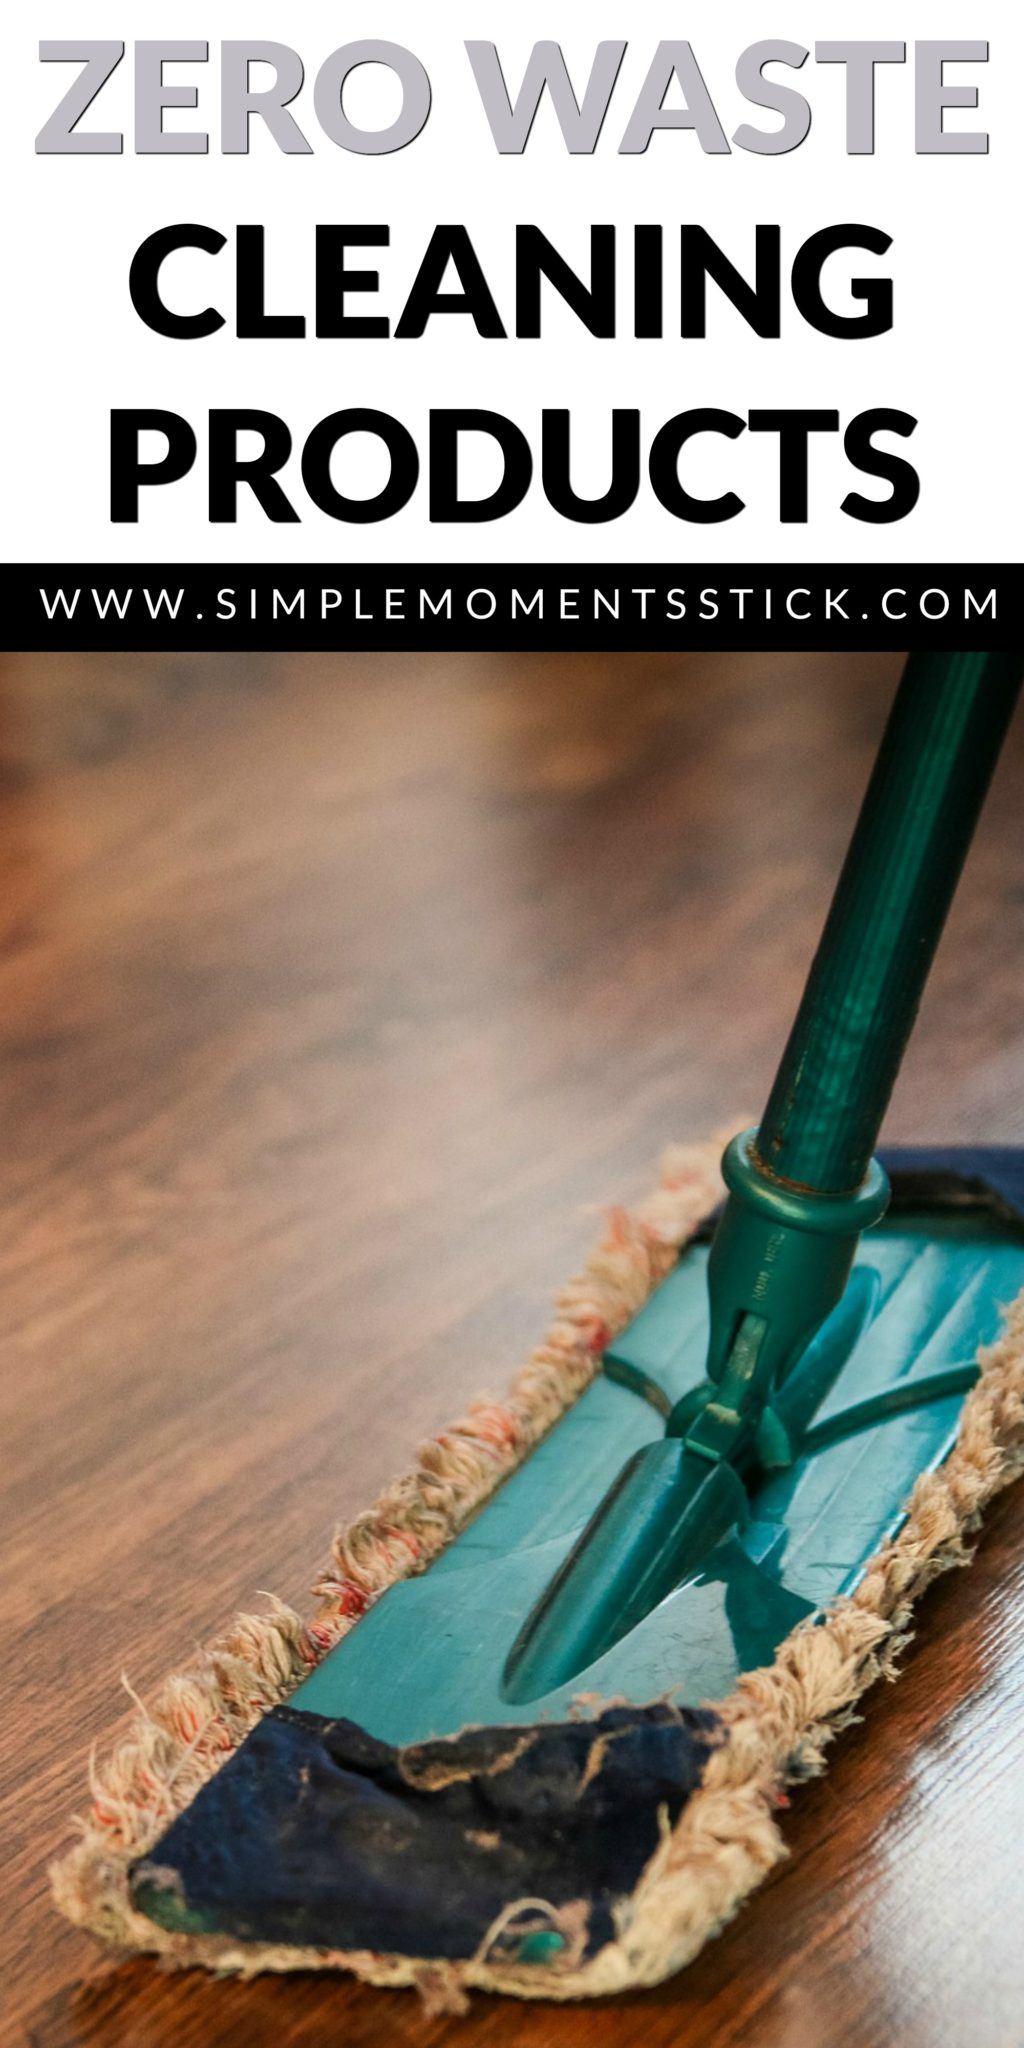 Looking for some waste free cleaning products to add to your life? These zero waste cleaning tools are wonderful and good for the environment too!